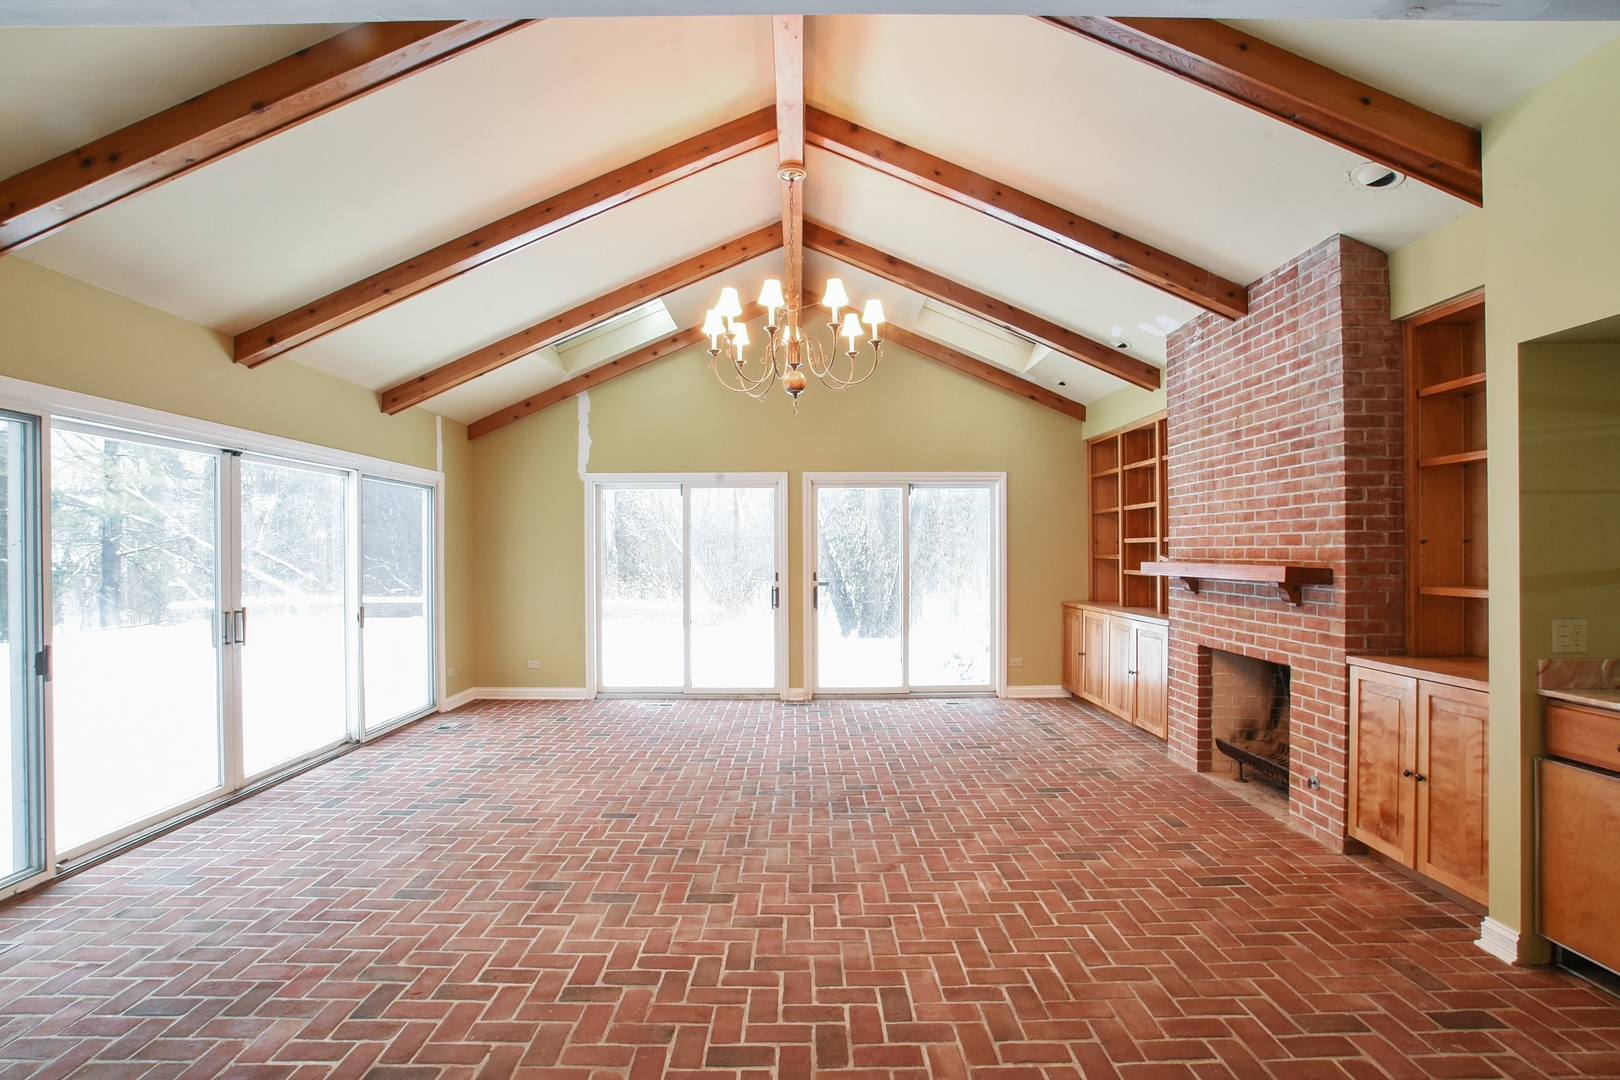 325 WEST DEERPATH ROAD, LAKE FOREST, IL 60045  Photo 7